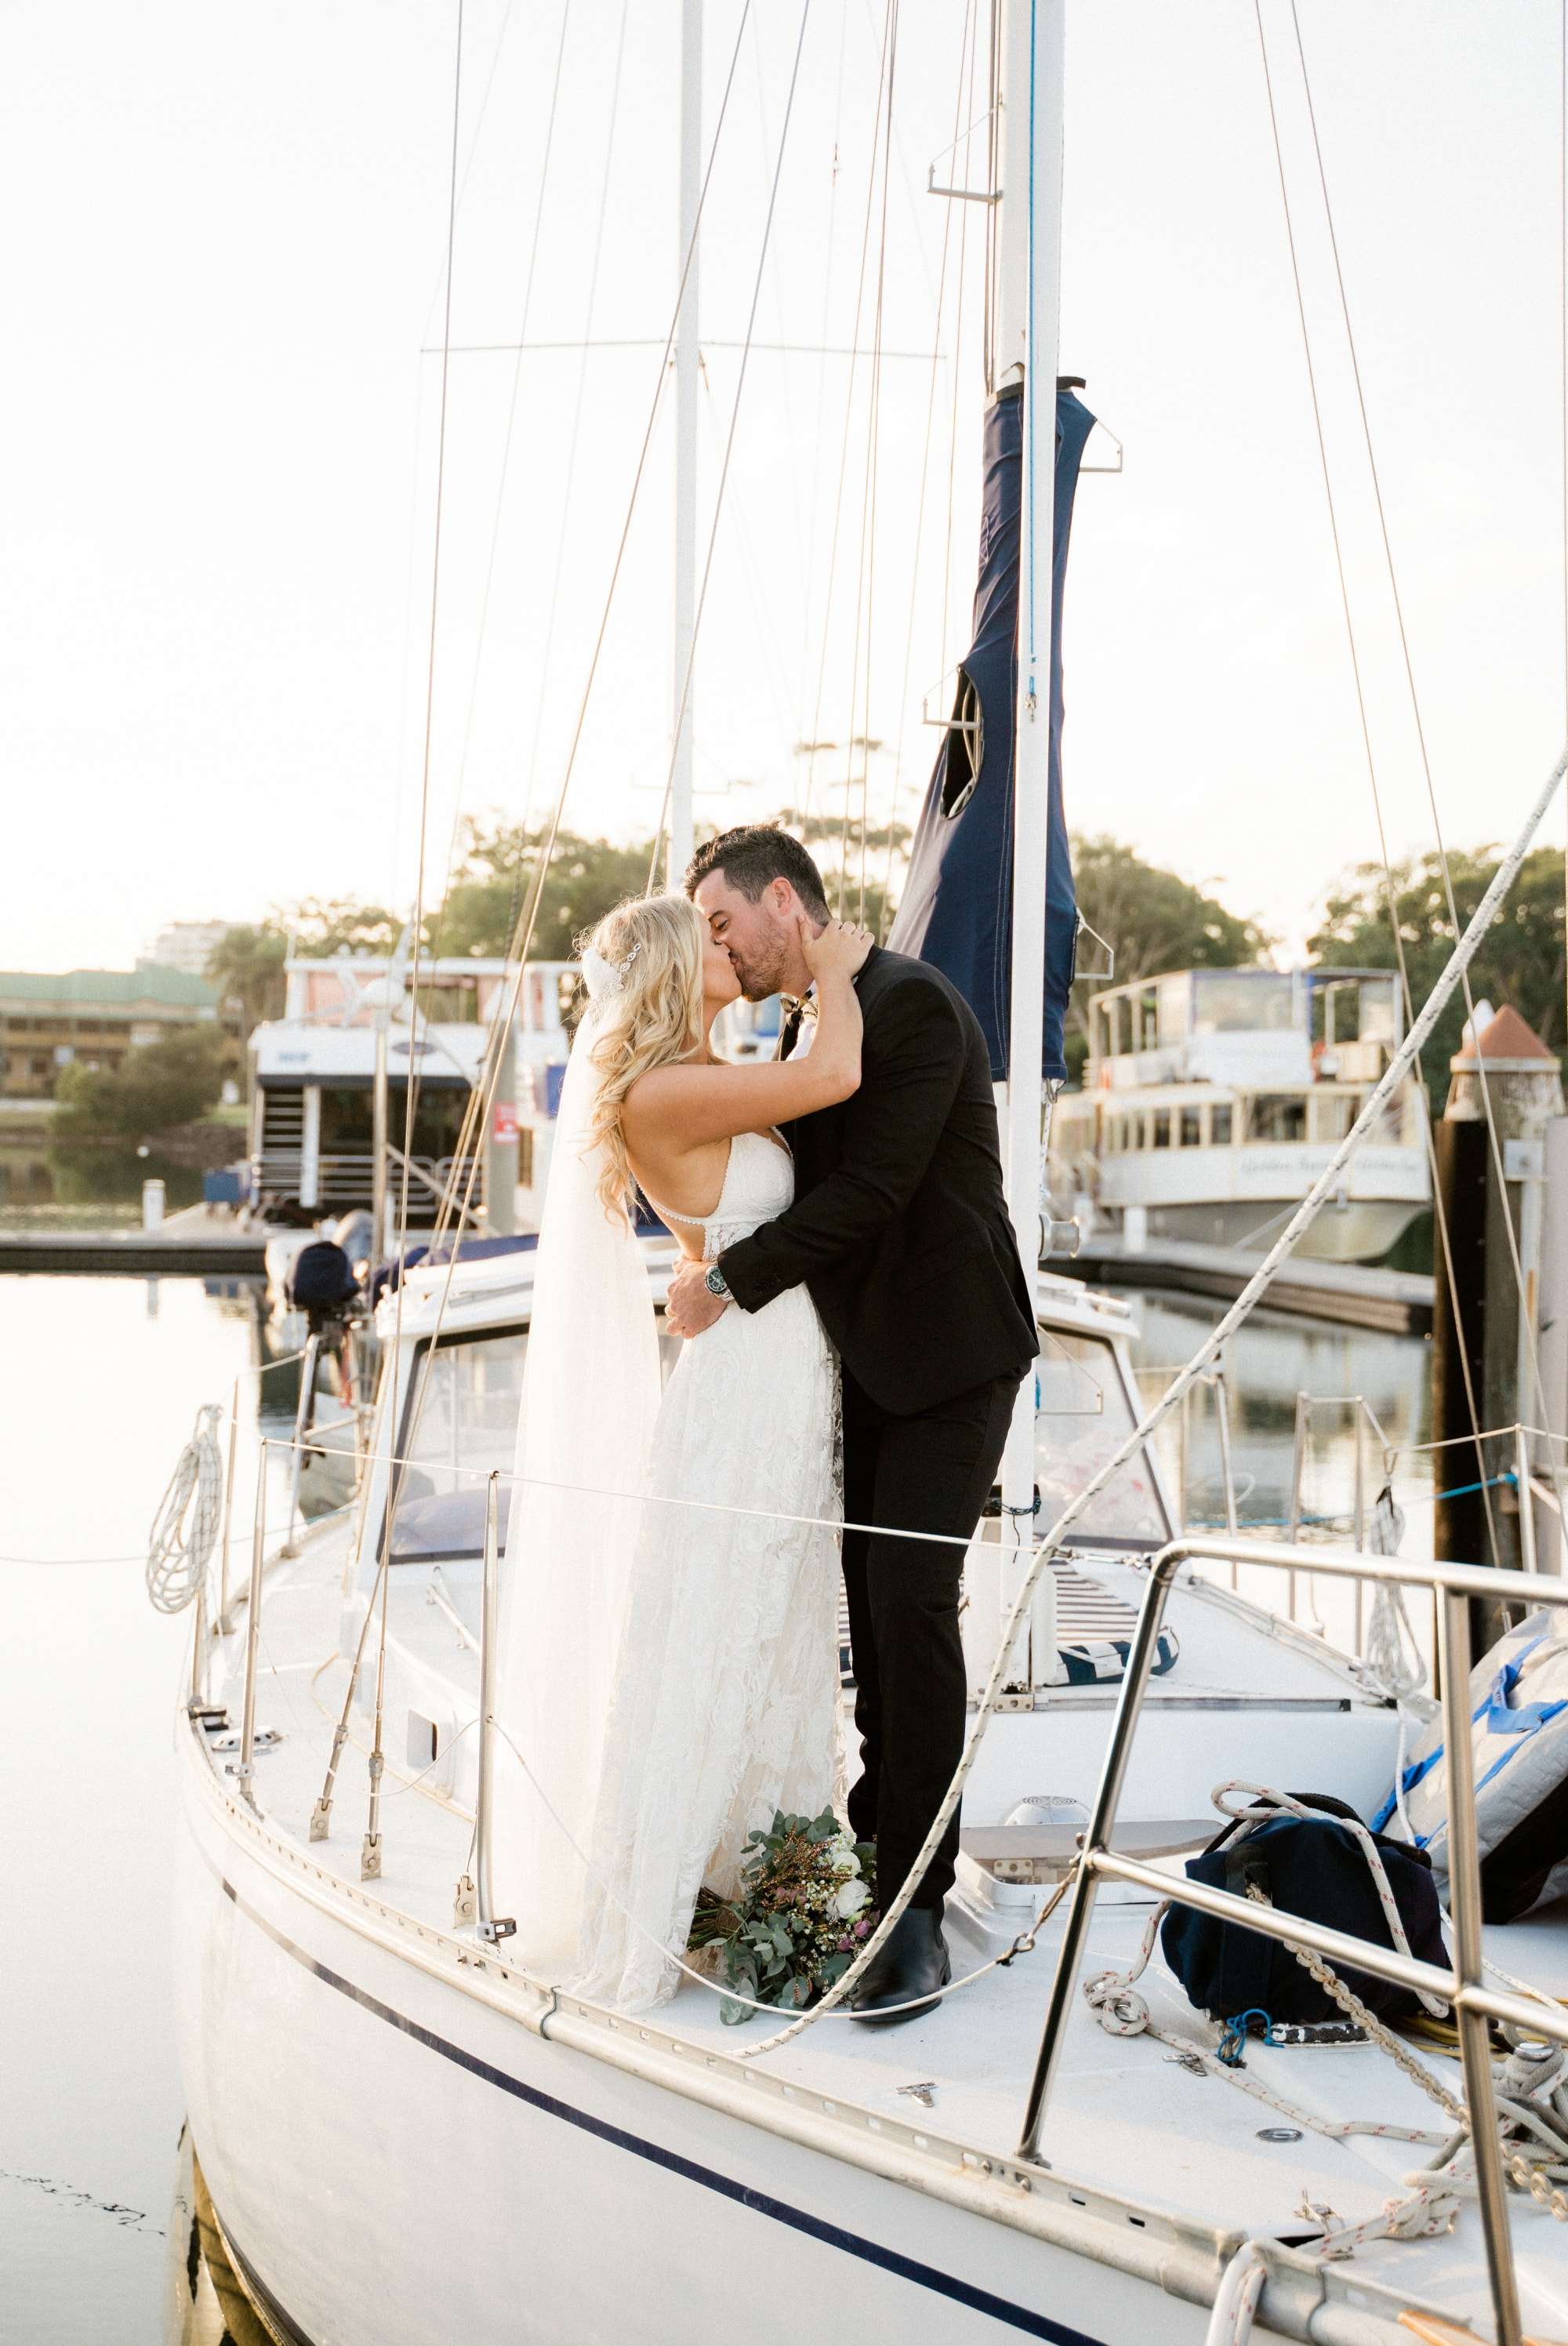 bride and groom on a boat wedding gold coast www.benandhopeweddings.com.au